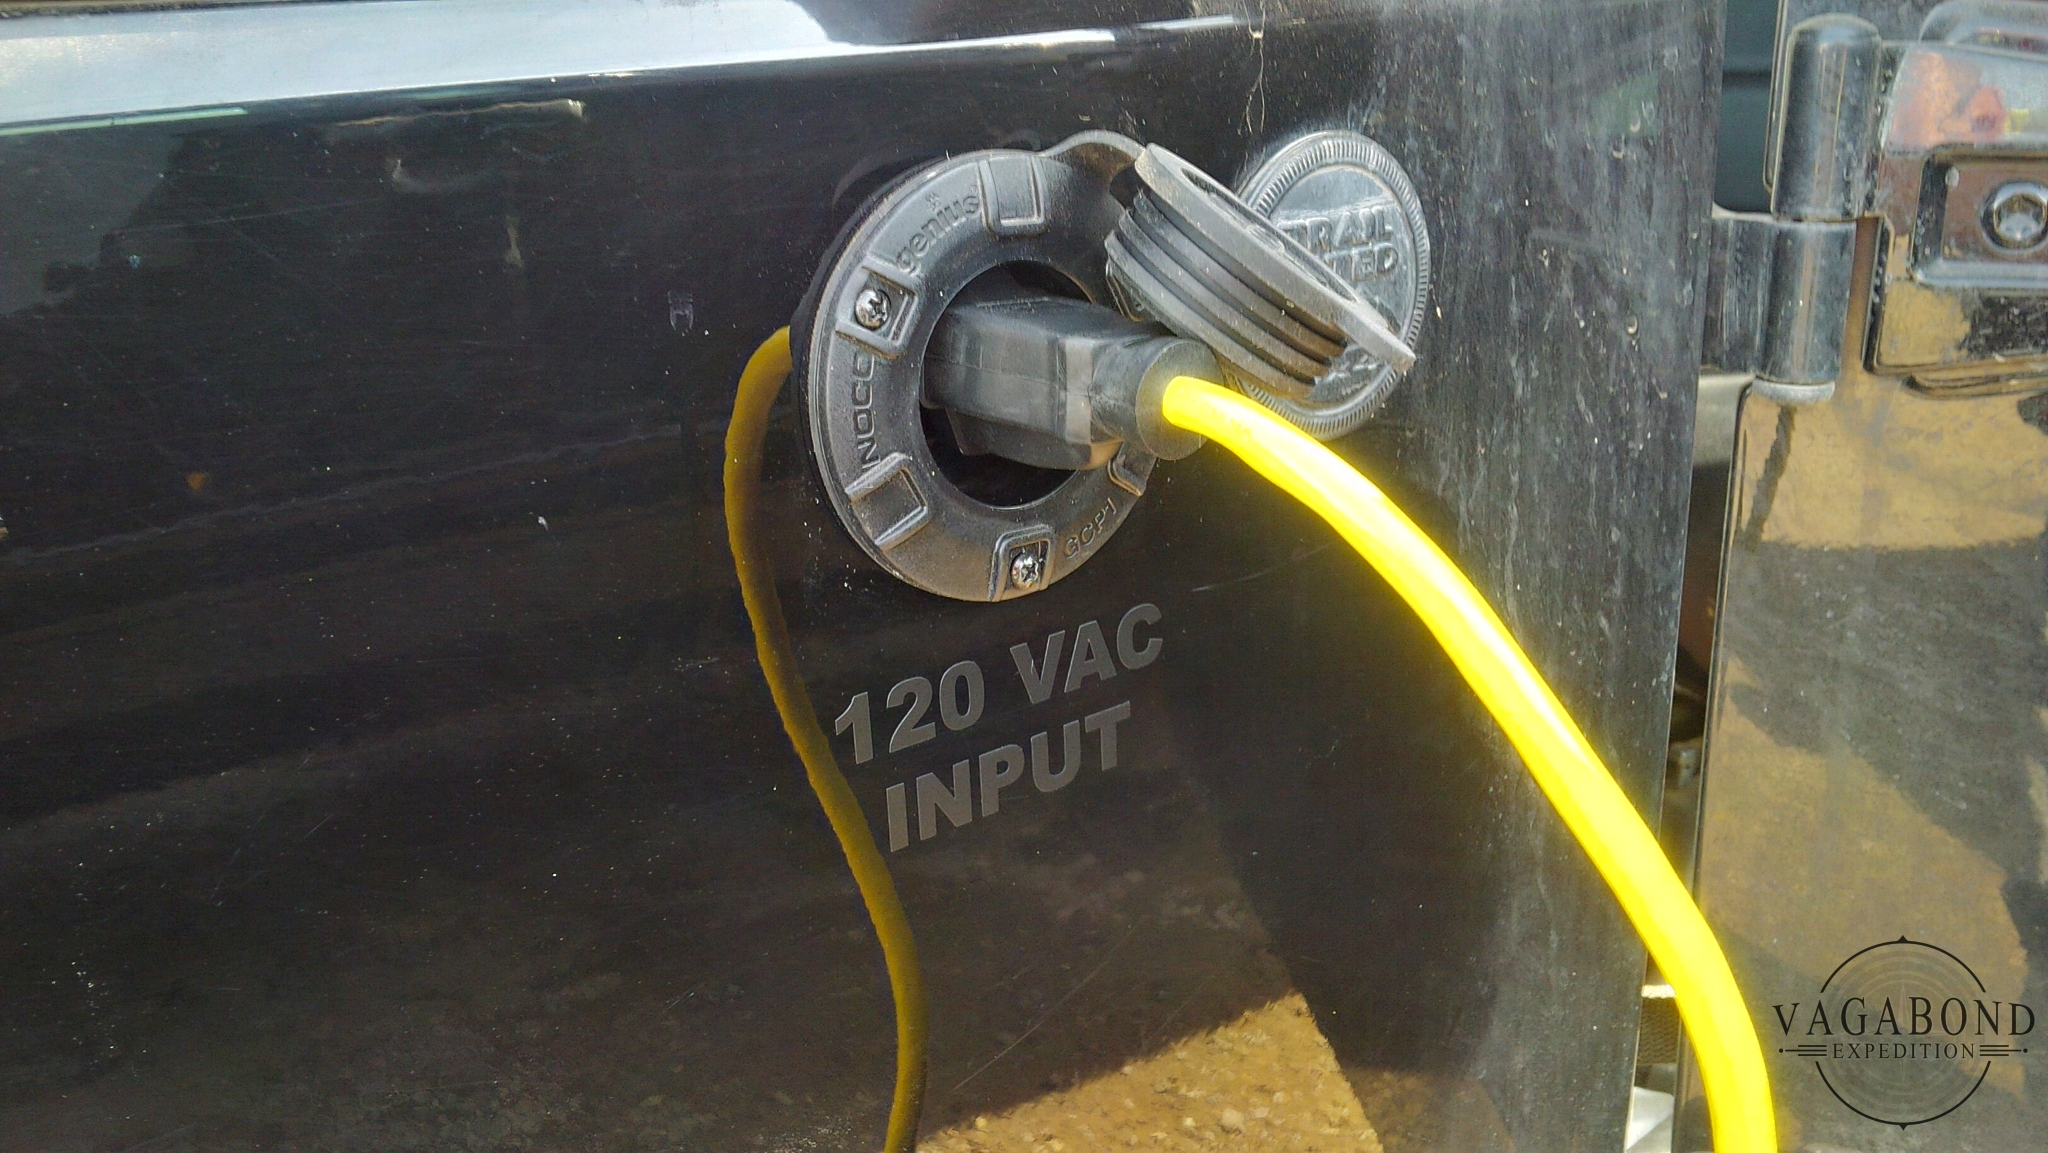 the NOCO genius power port provides shore power to the overland jeep